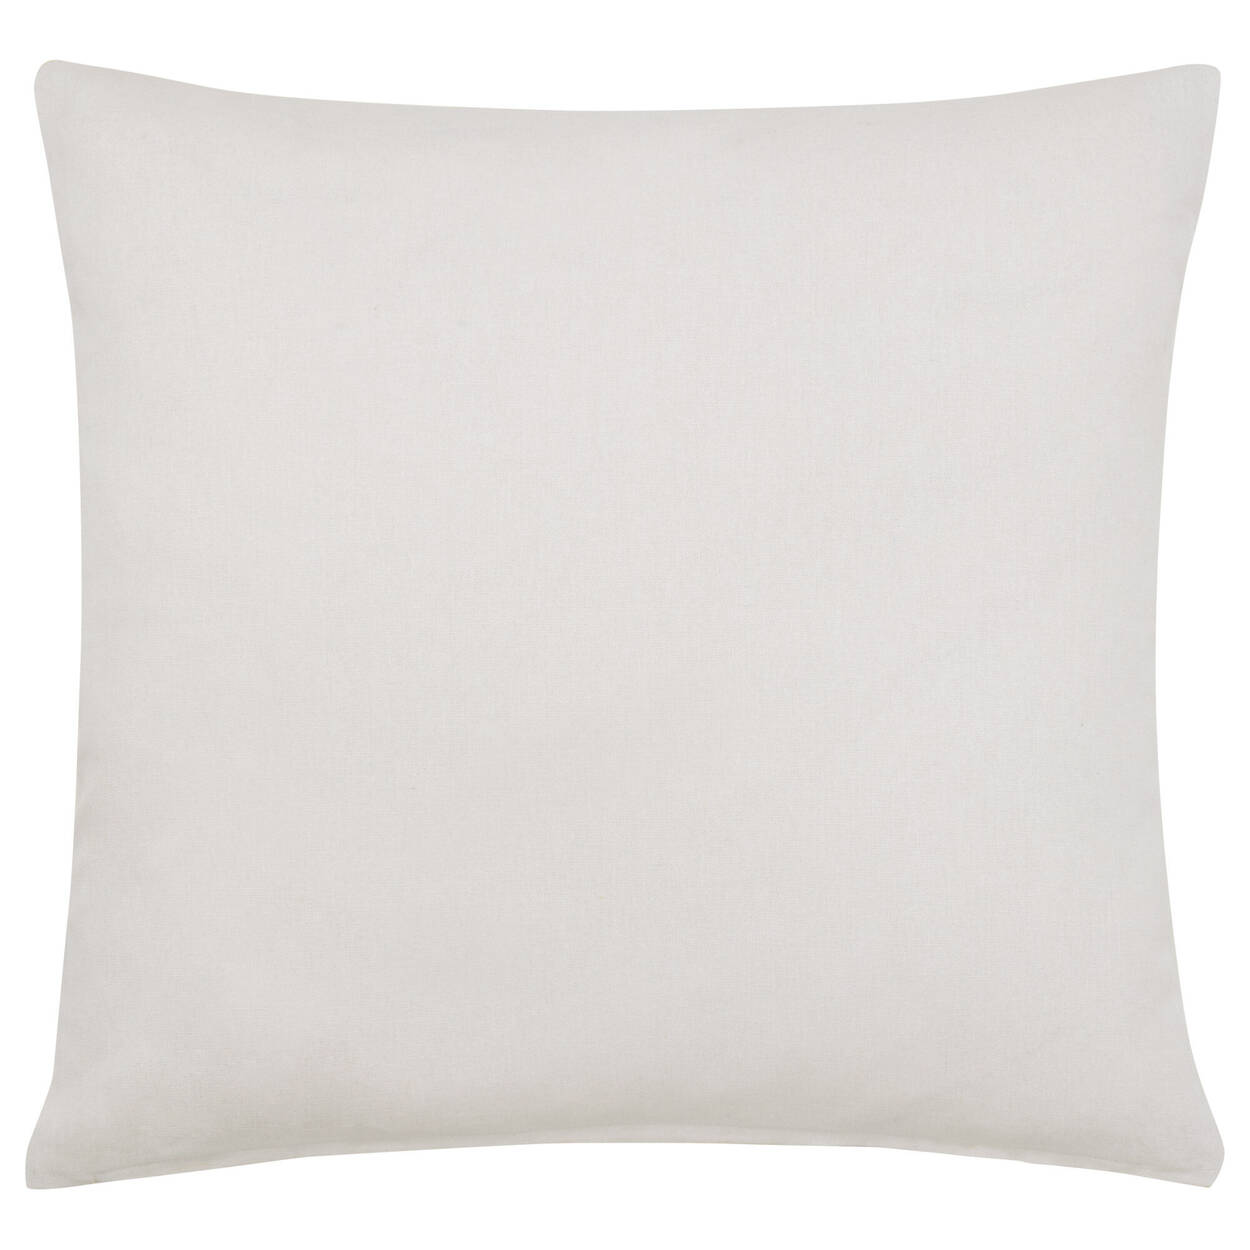 "Jenay Decorative Pillow Cover 18"" x 18"""